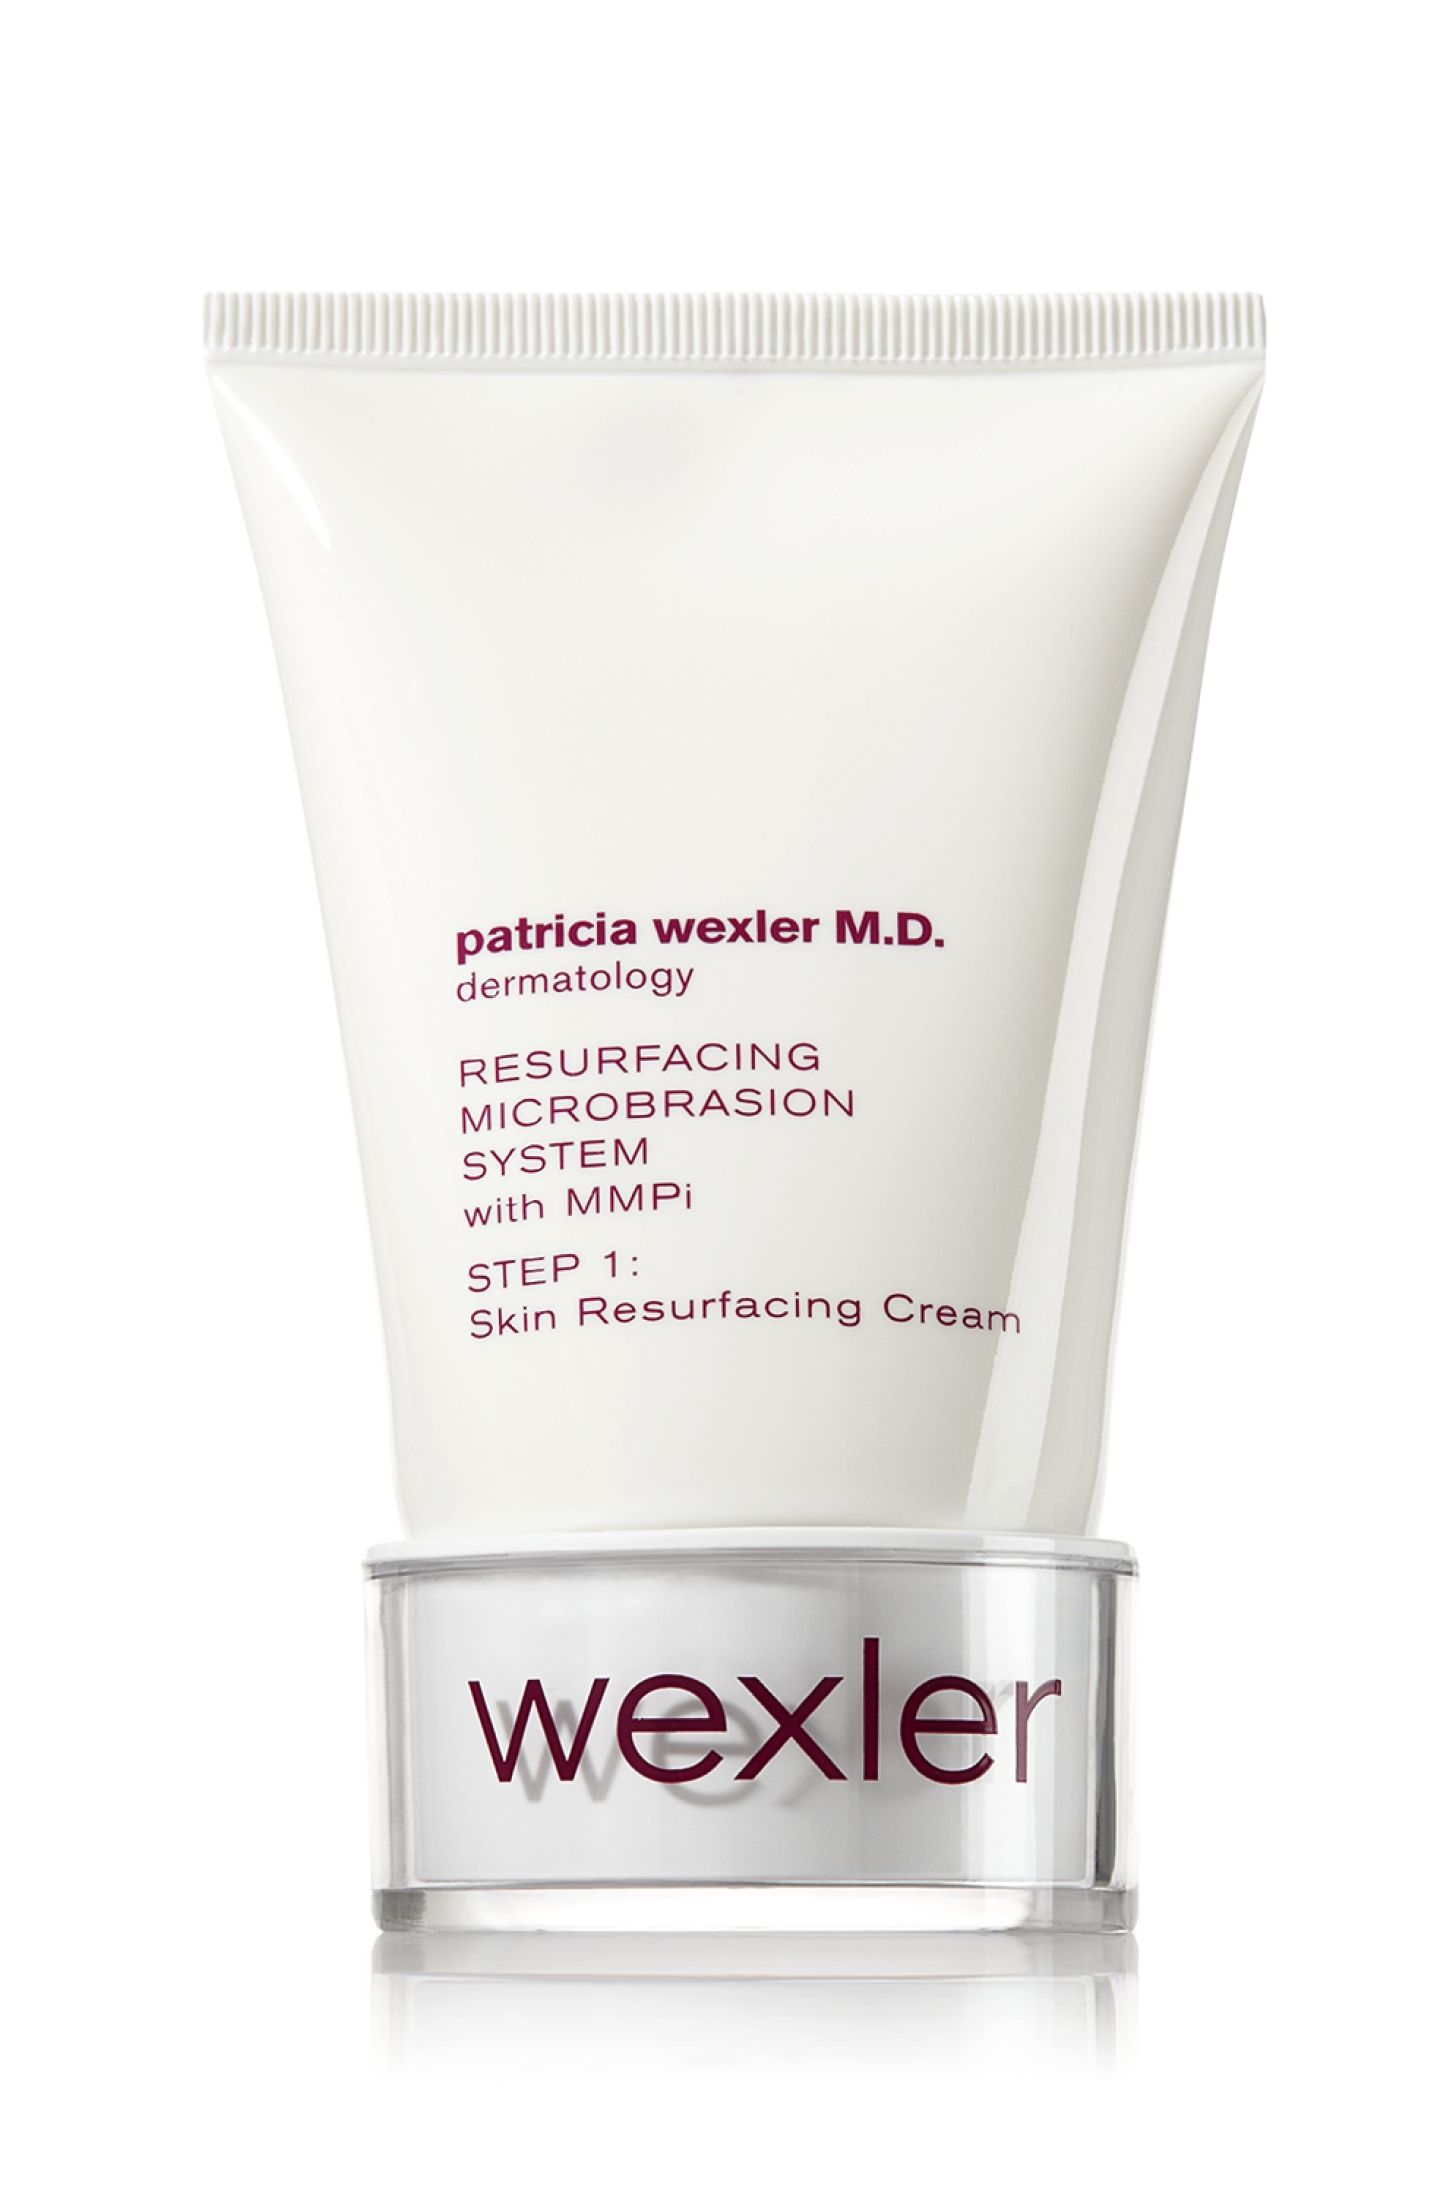 Resurfacing Microbrasion System Skin Resurfacing Cream Patricia Wexler M D This Is The Best Exfol Bath And Body Works Skin Resurfacing Cream Bath And Body